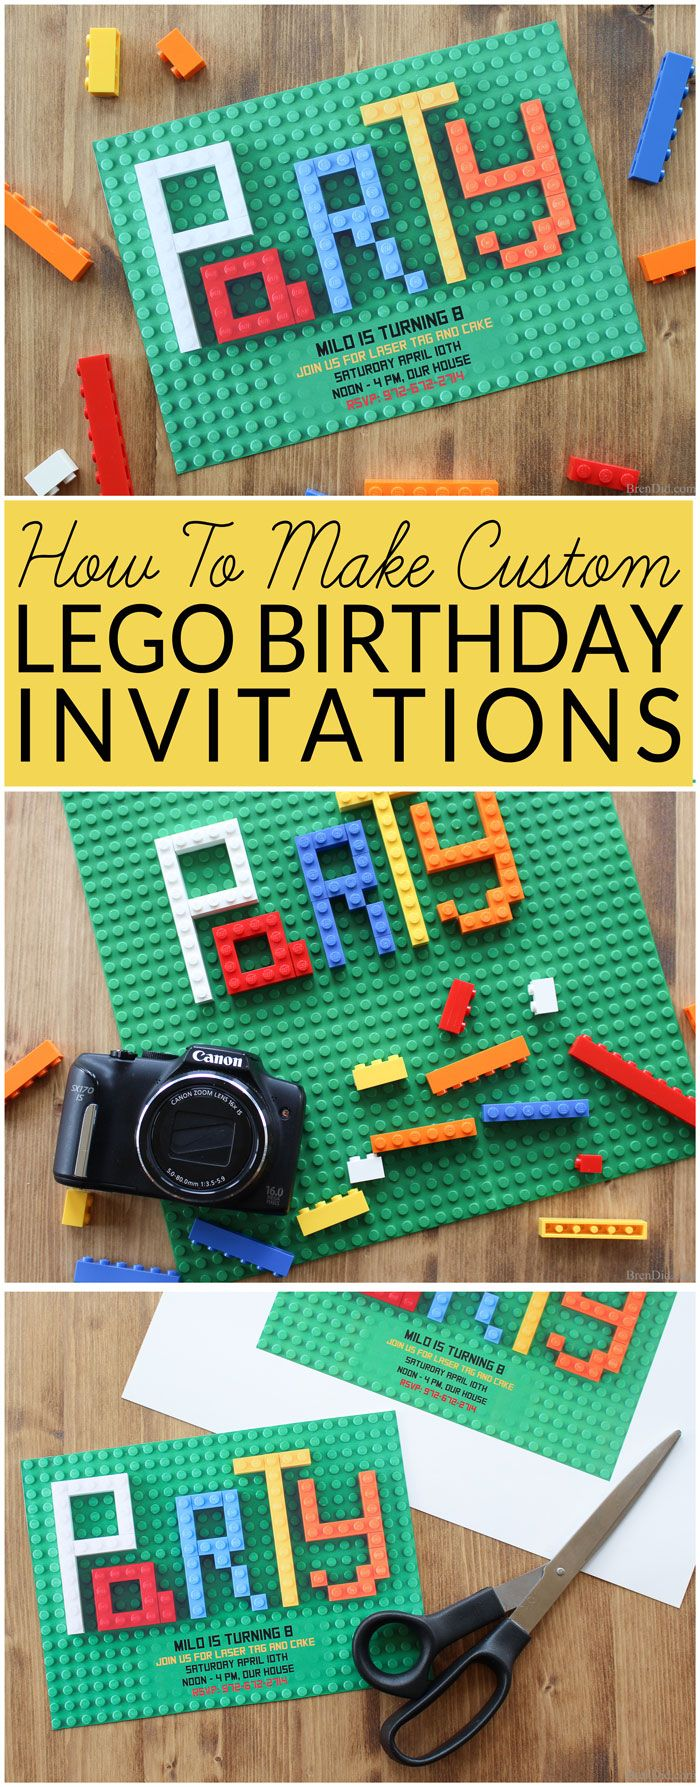 Best 25 Lego invitations ideas – Boy Party Invitations